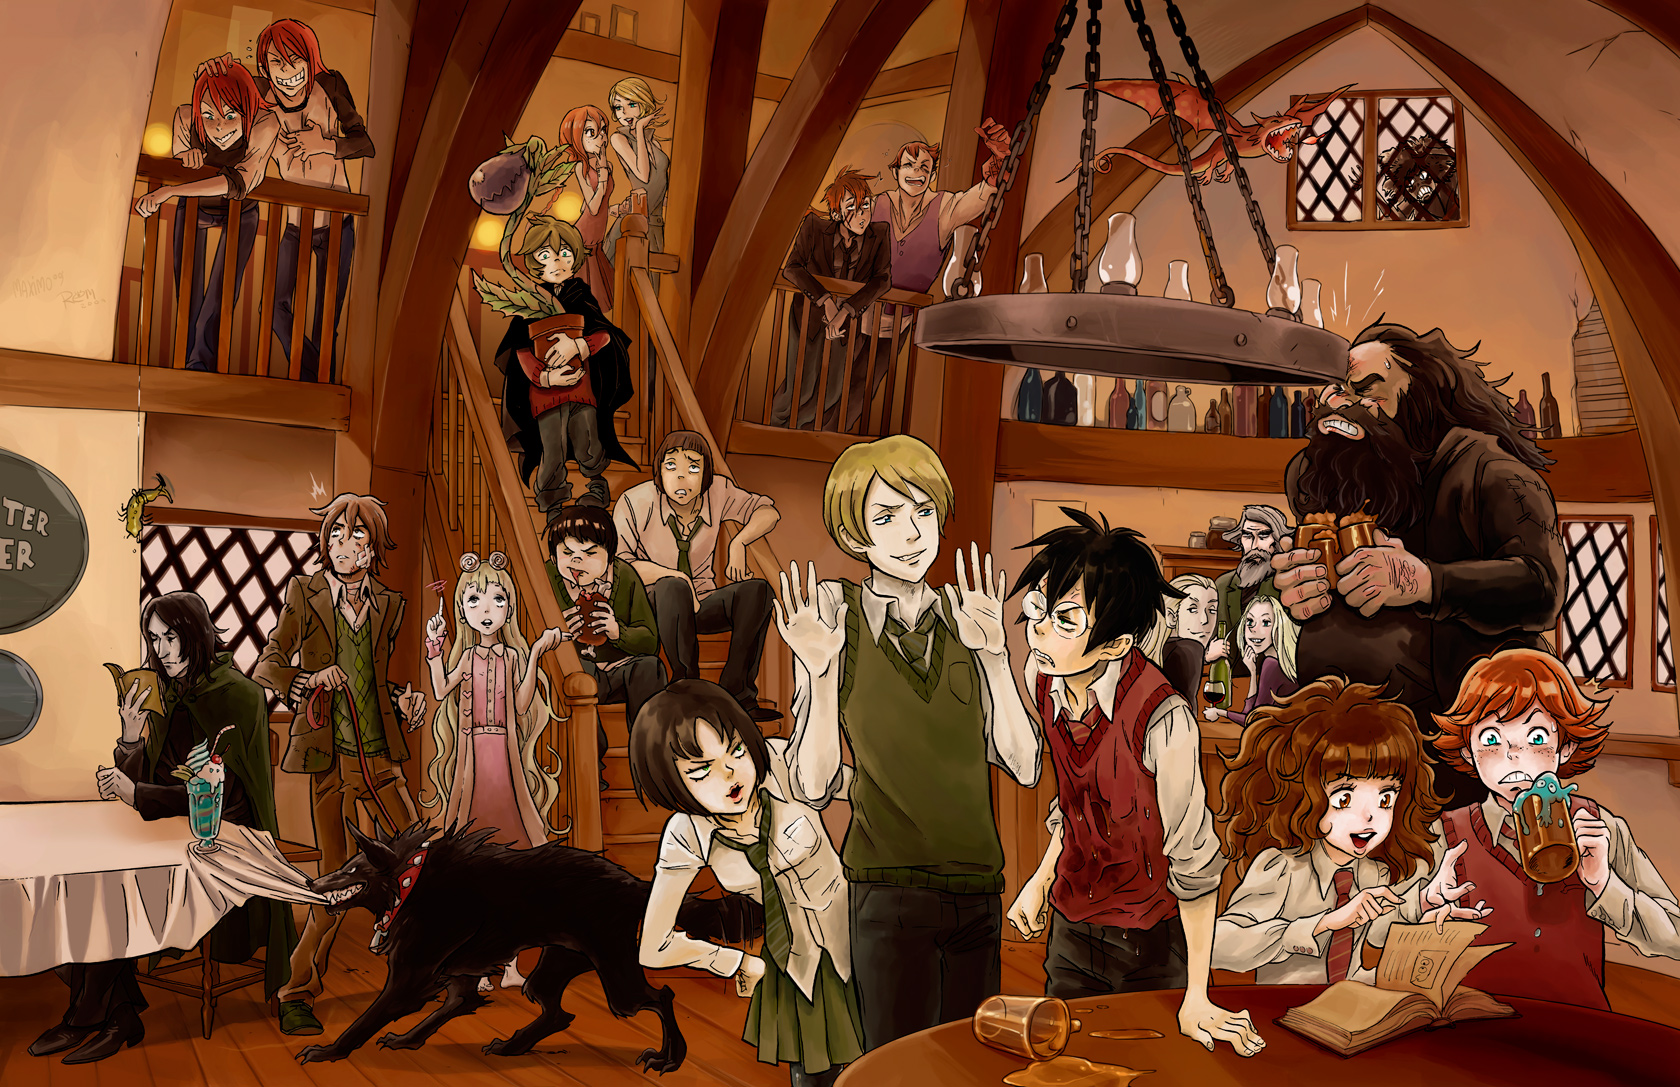 Cool Wallpaper Harry Potter Childhood - db2  Perfect Image Reference_572699.jpg